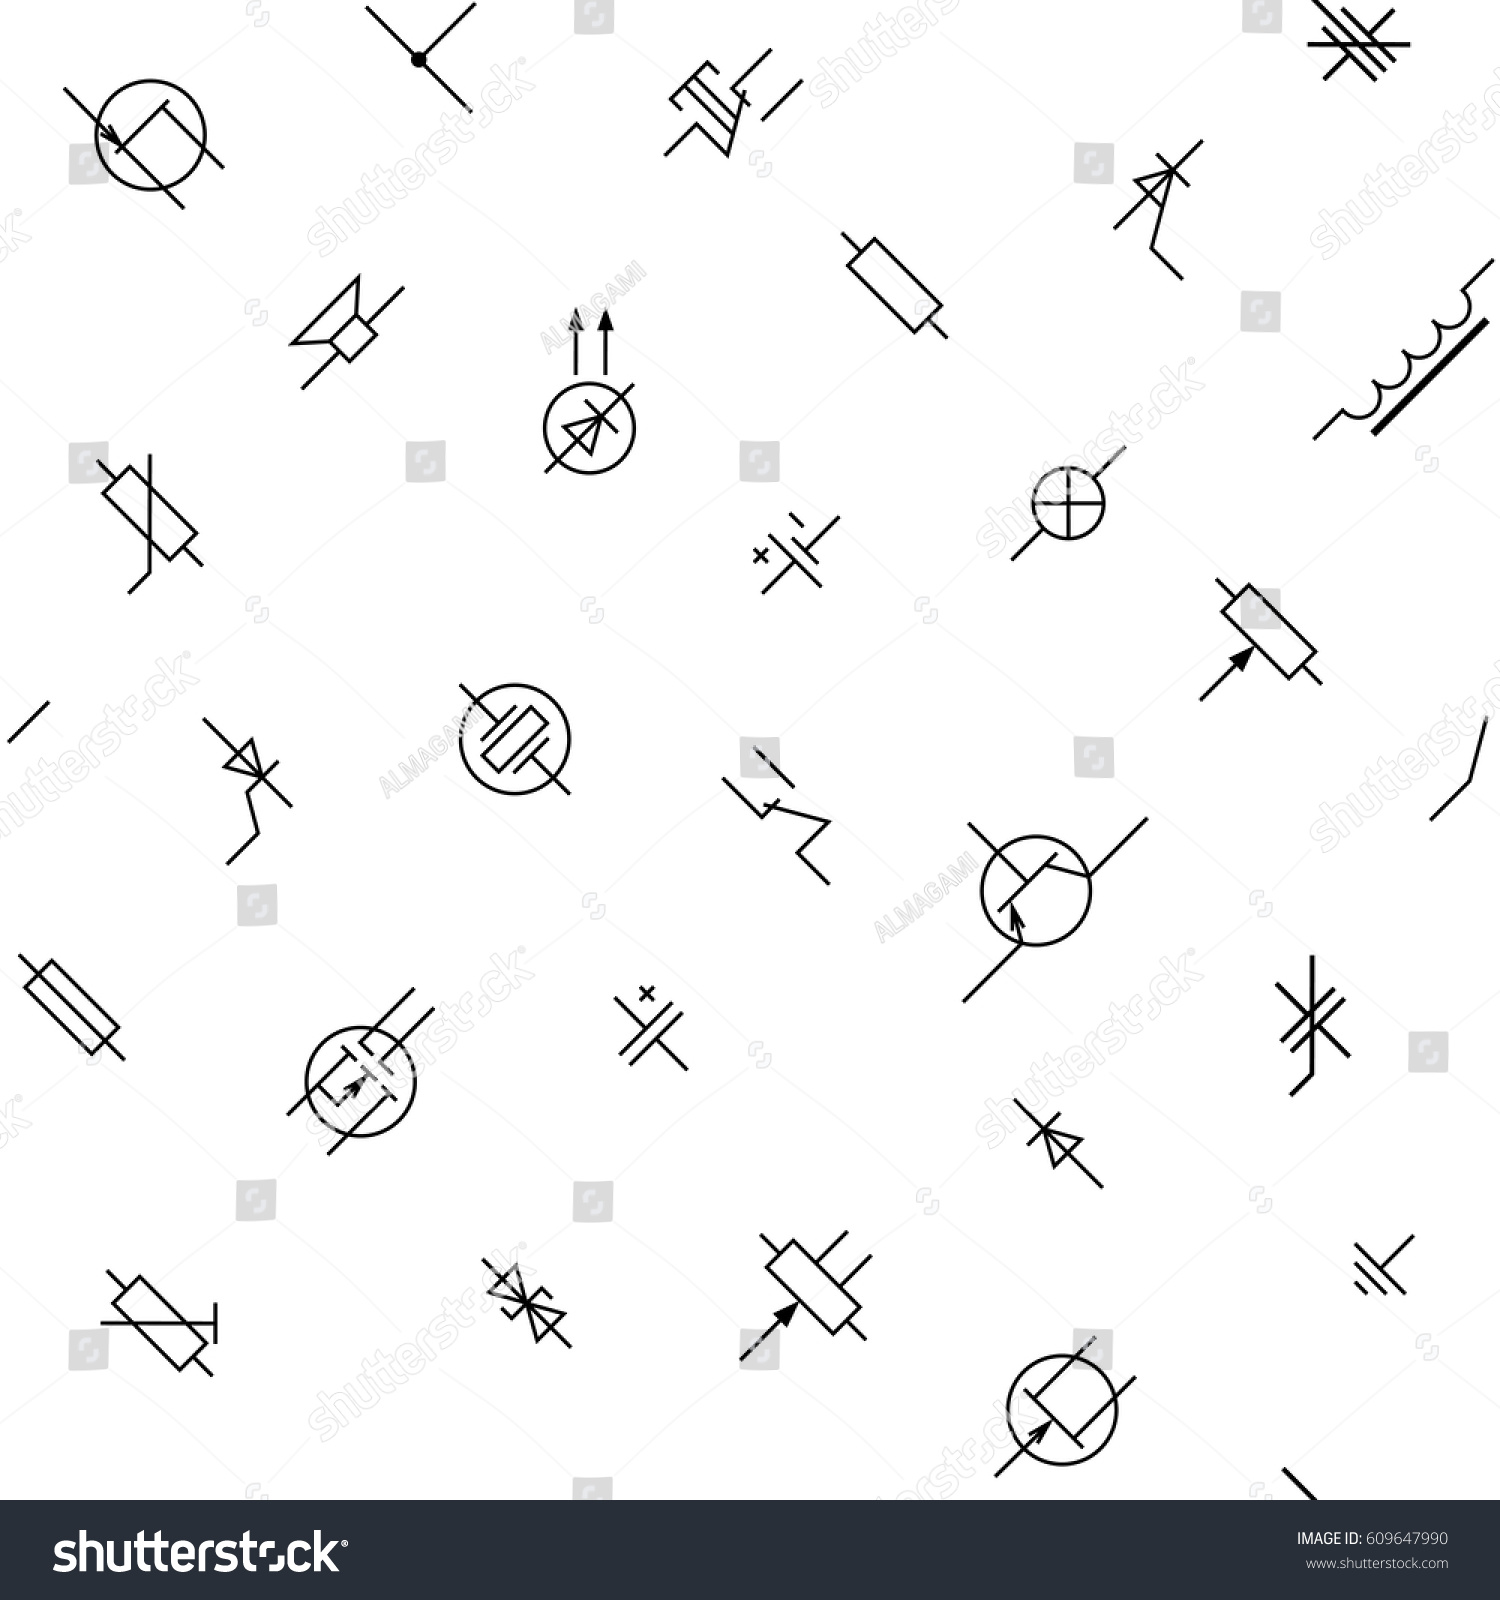 Black White Electronics Circuit Components Symbols Stock Vector ...